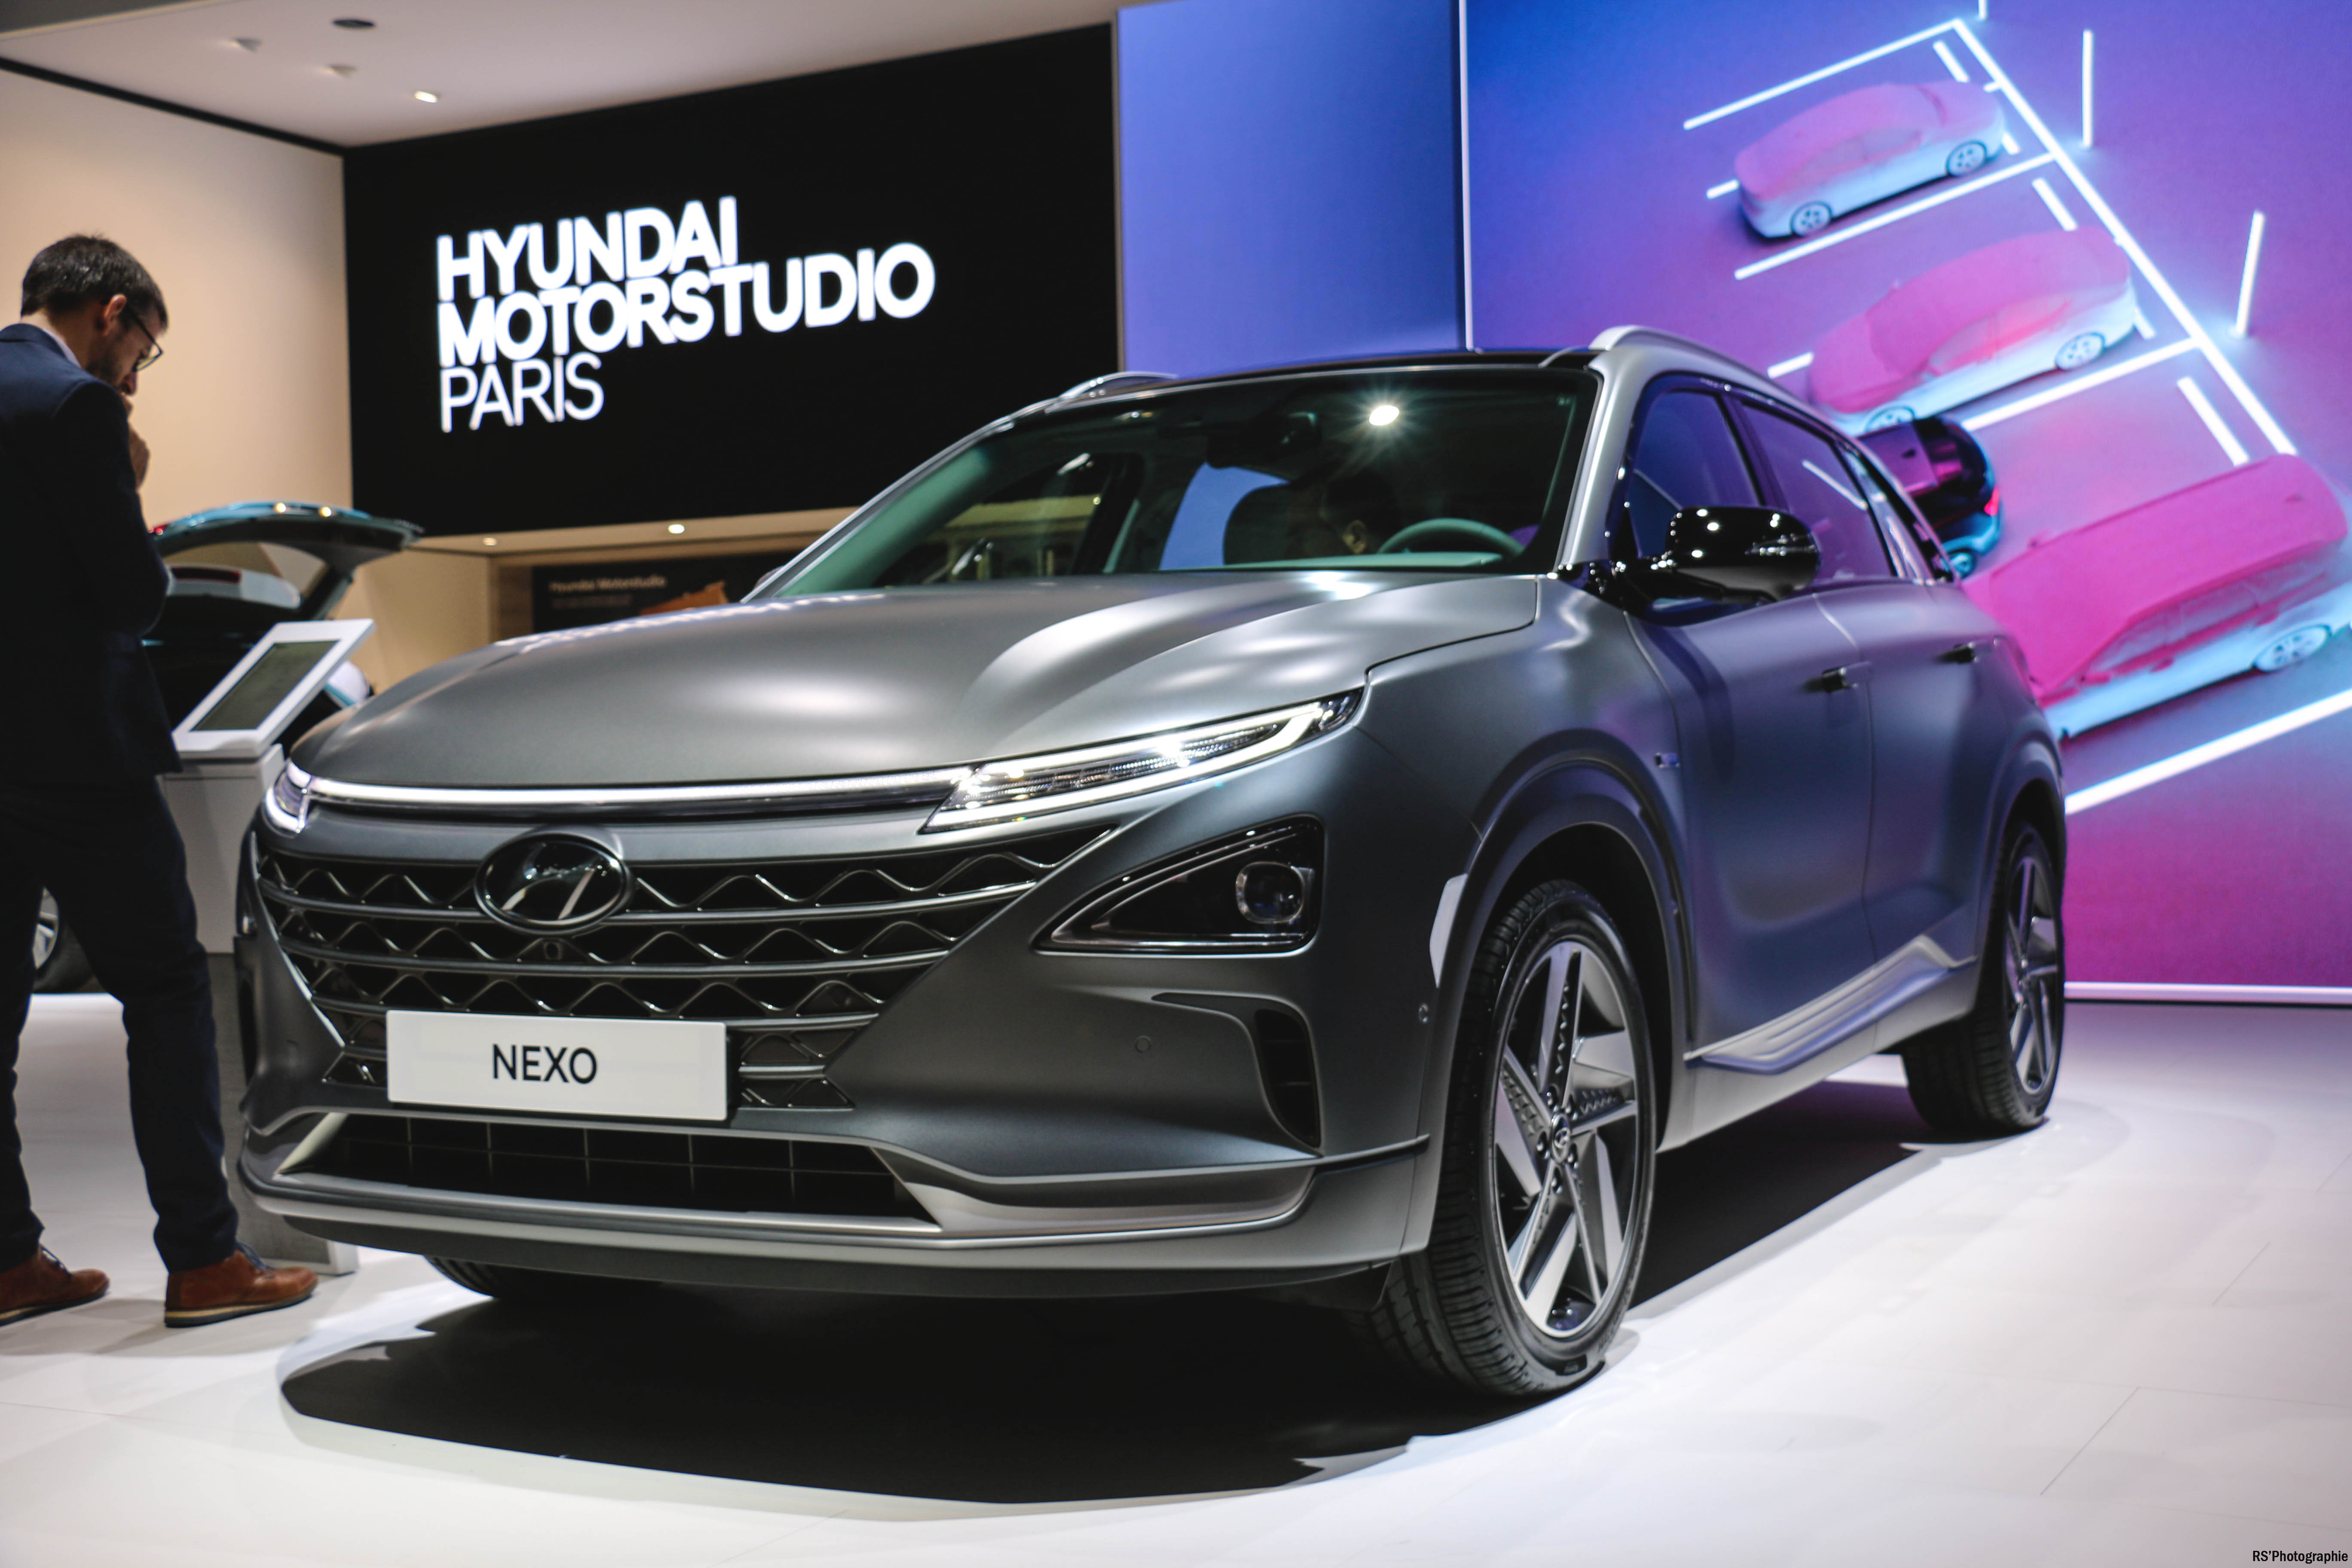 Hyundai Nexo - Paris Motor Show - 2018 - Mondial Auto - photo by Arnaud Demasier RS Photographie